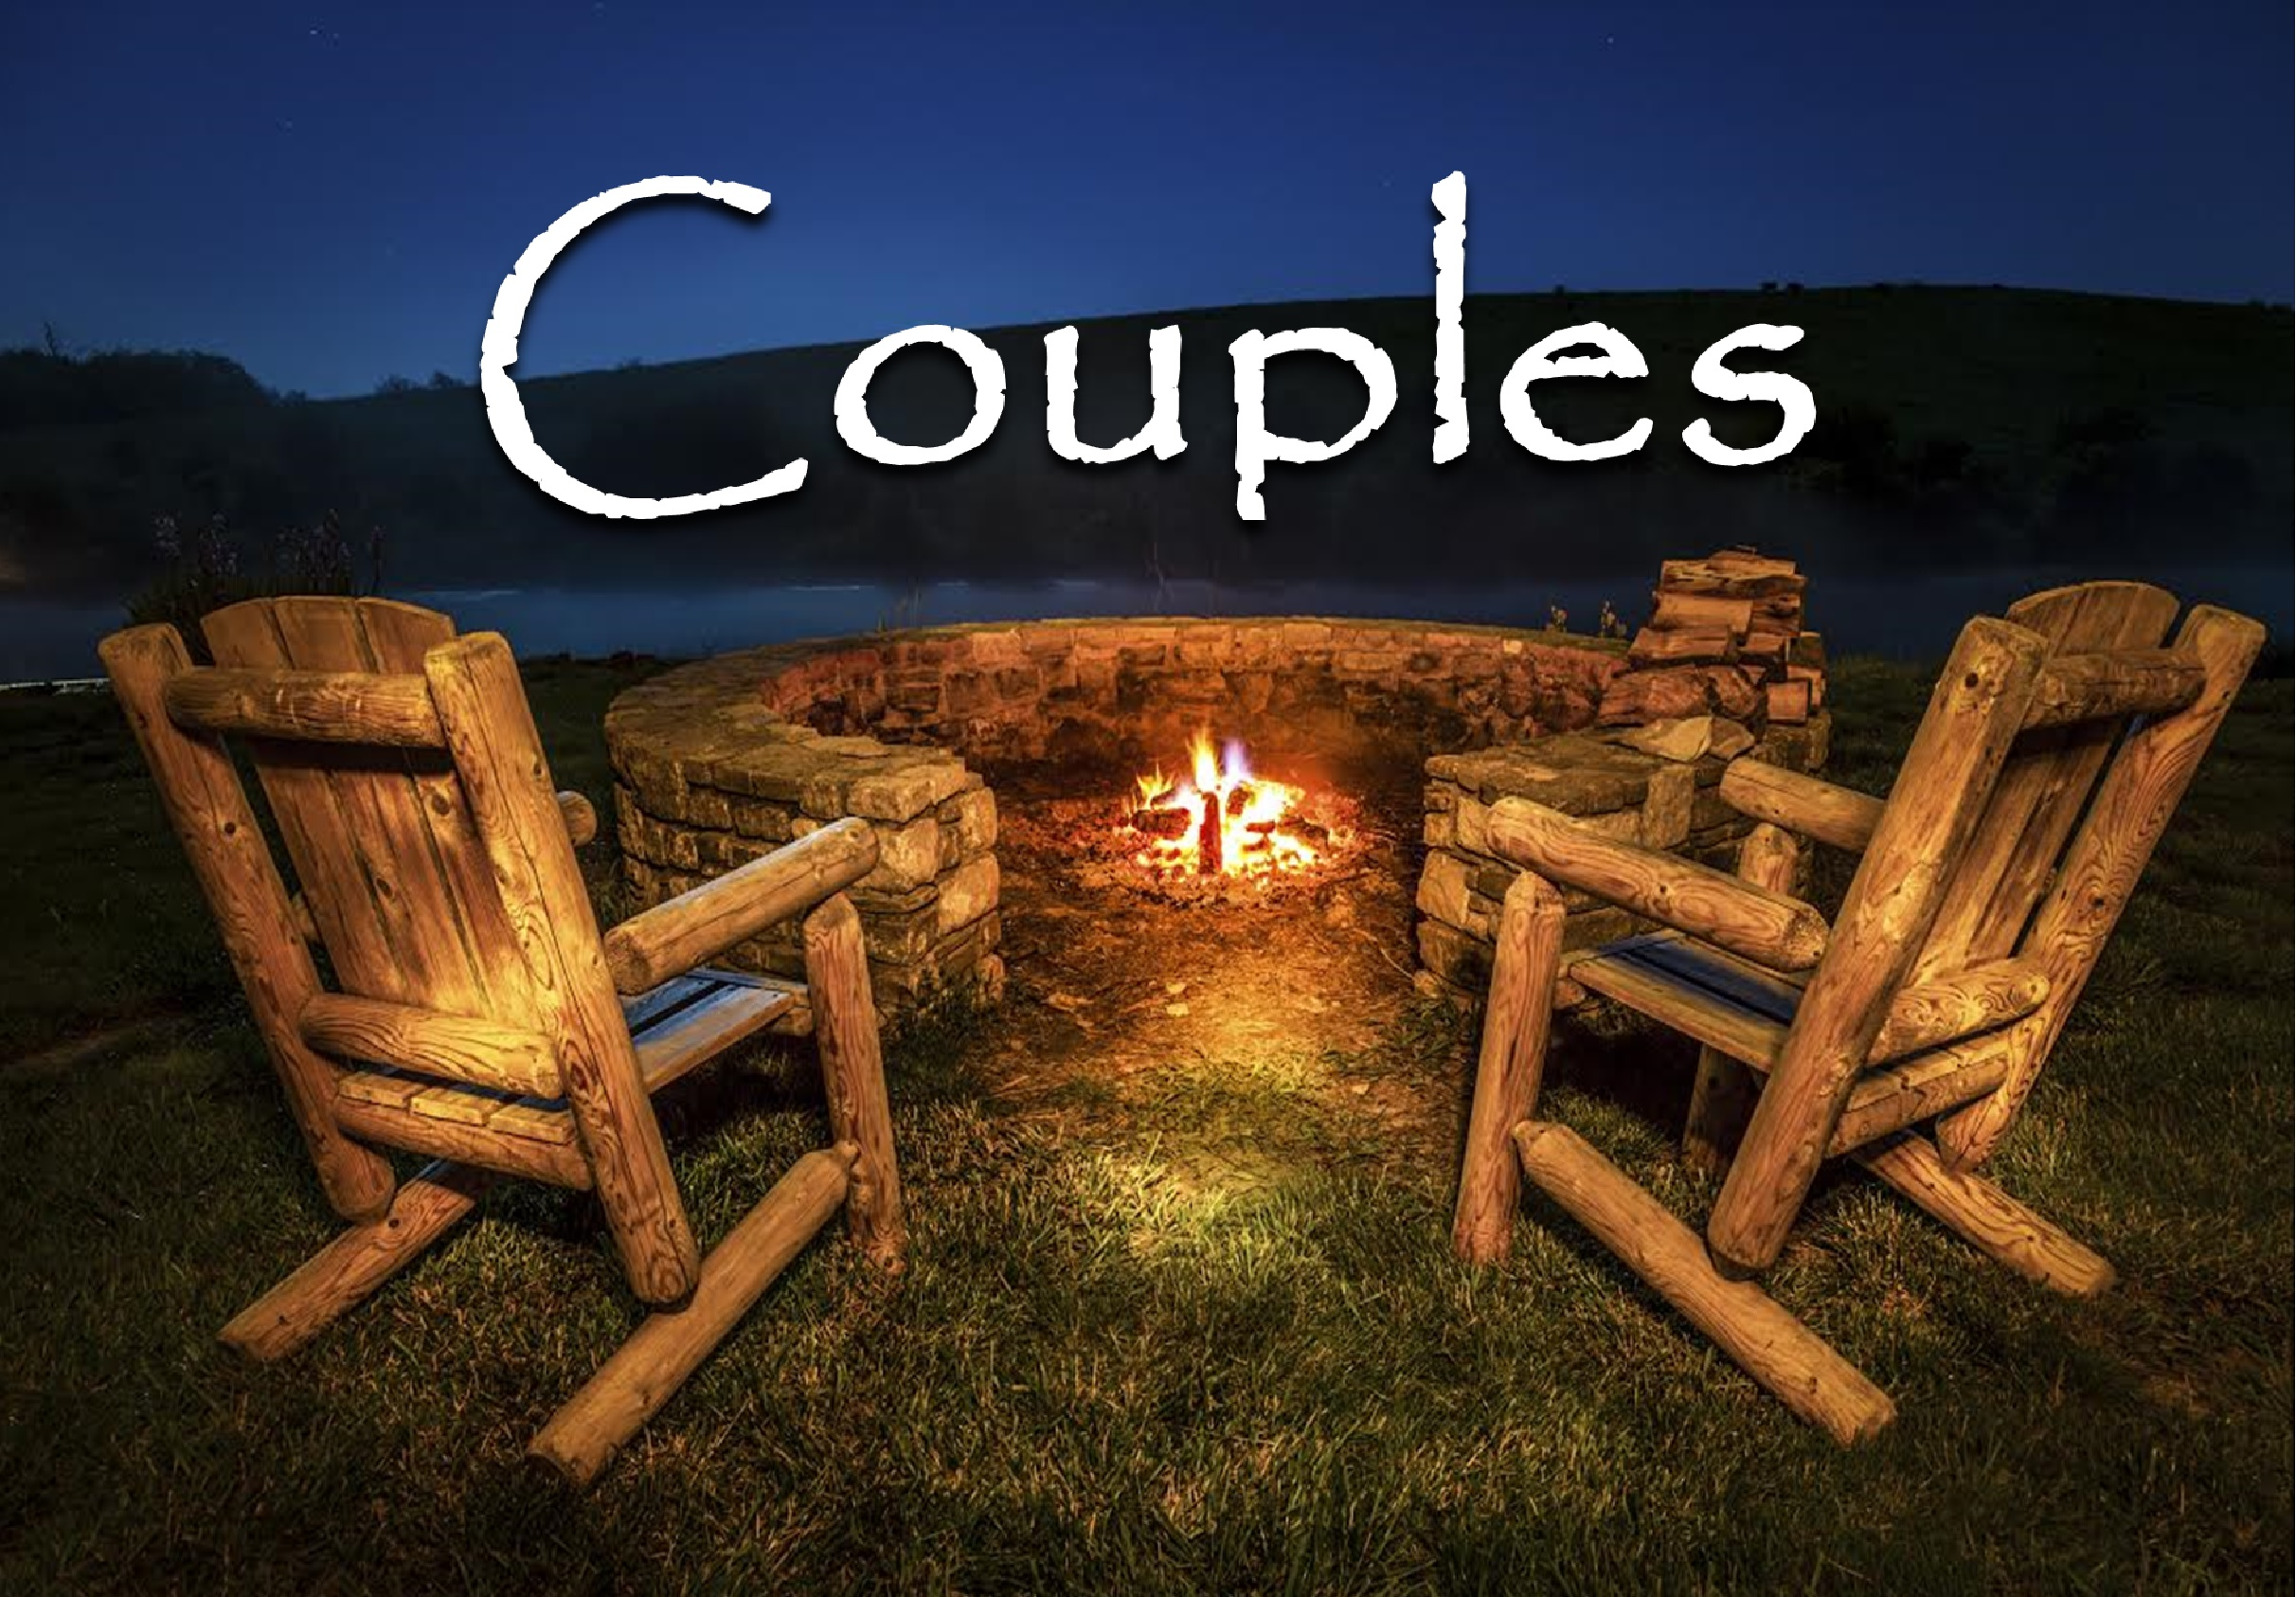 Couples (labeled)